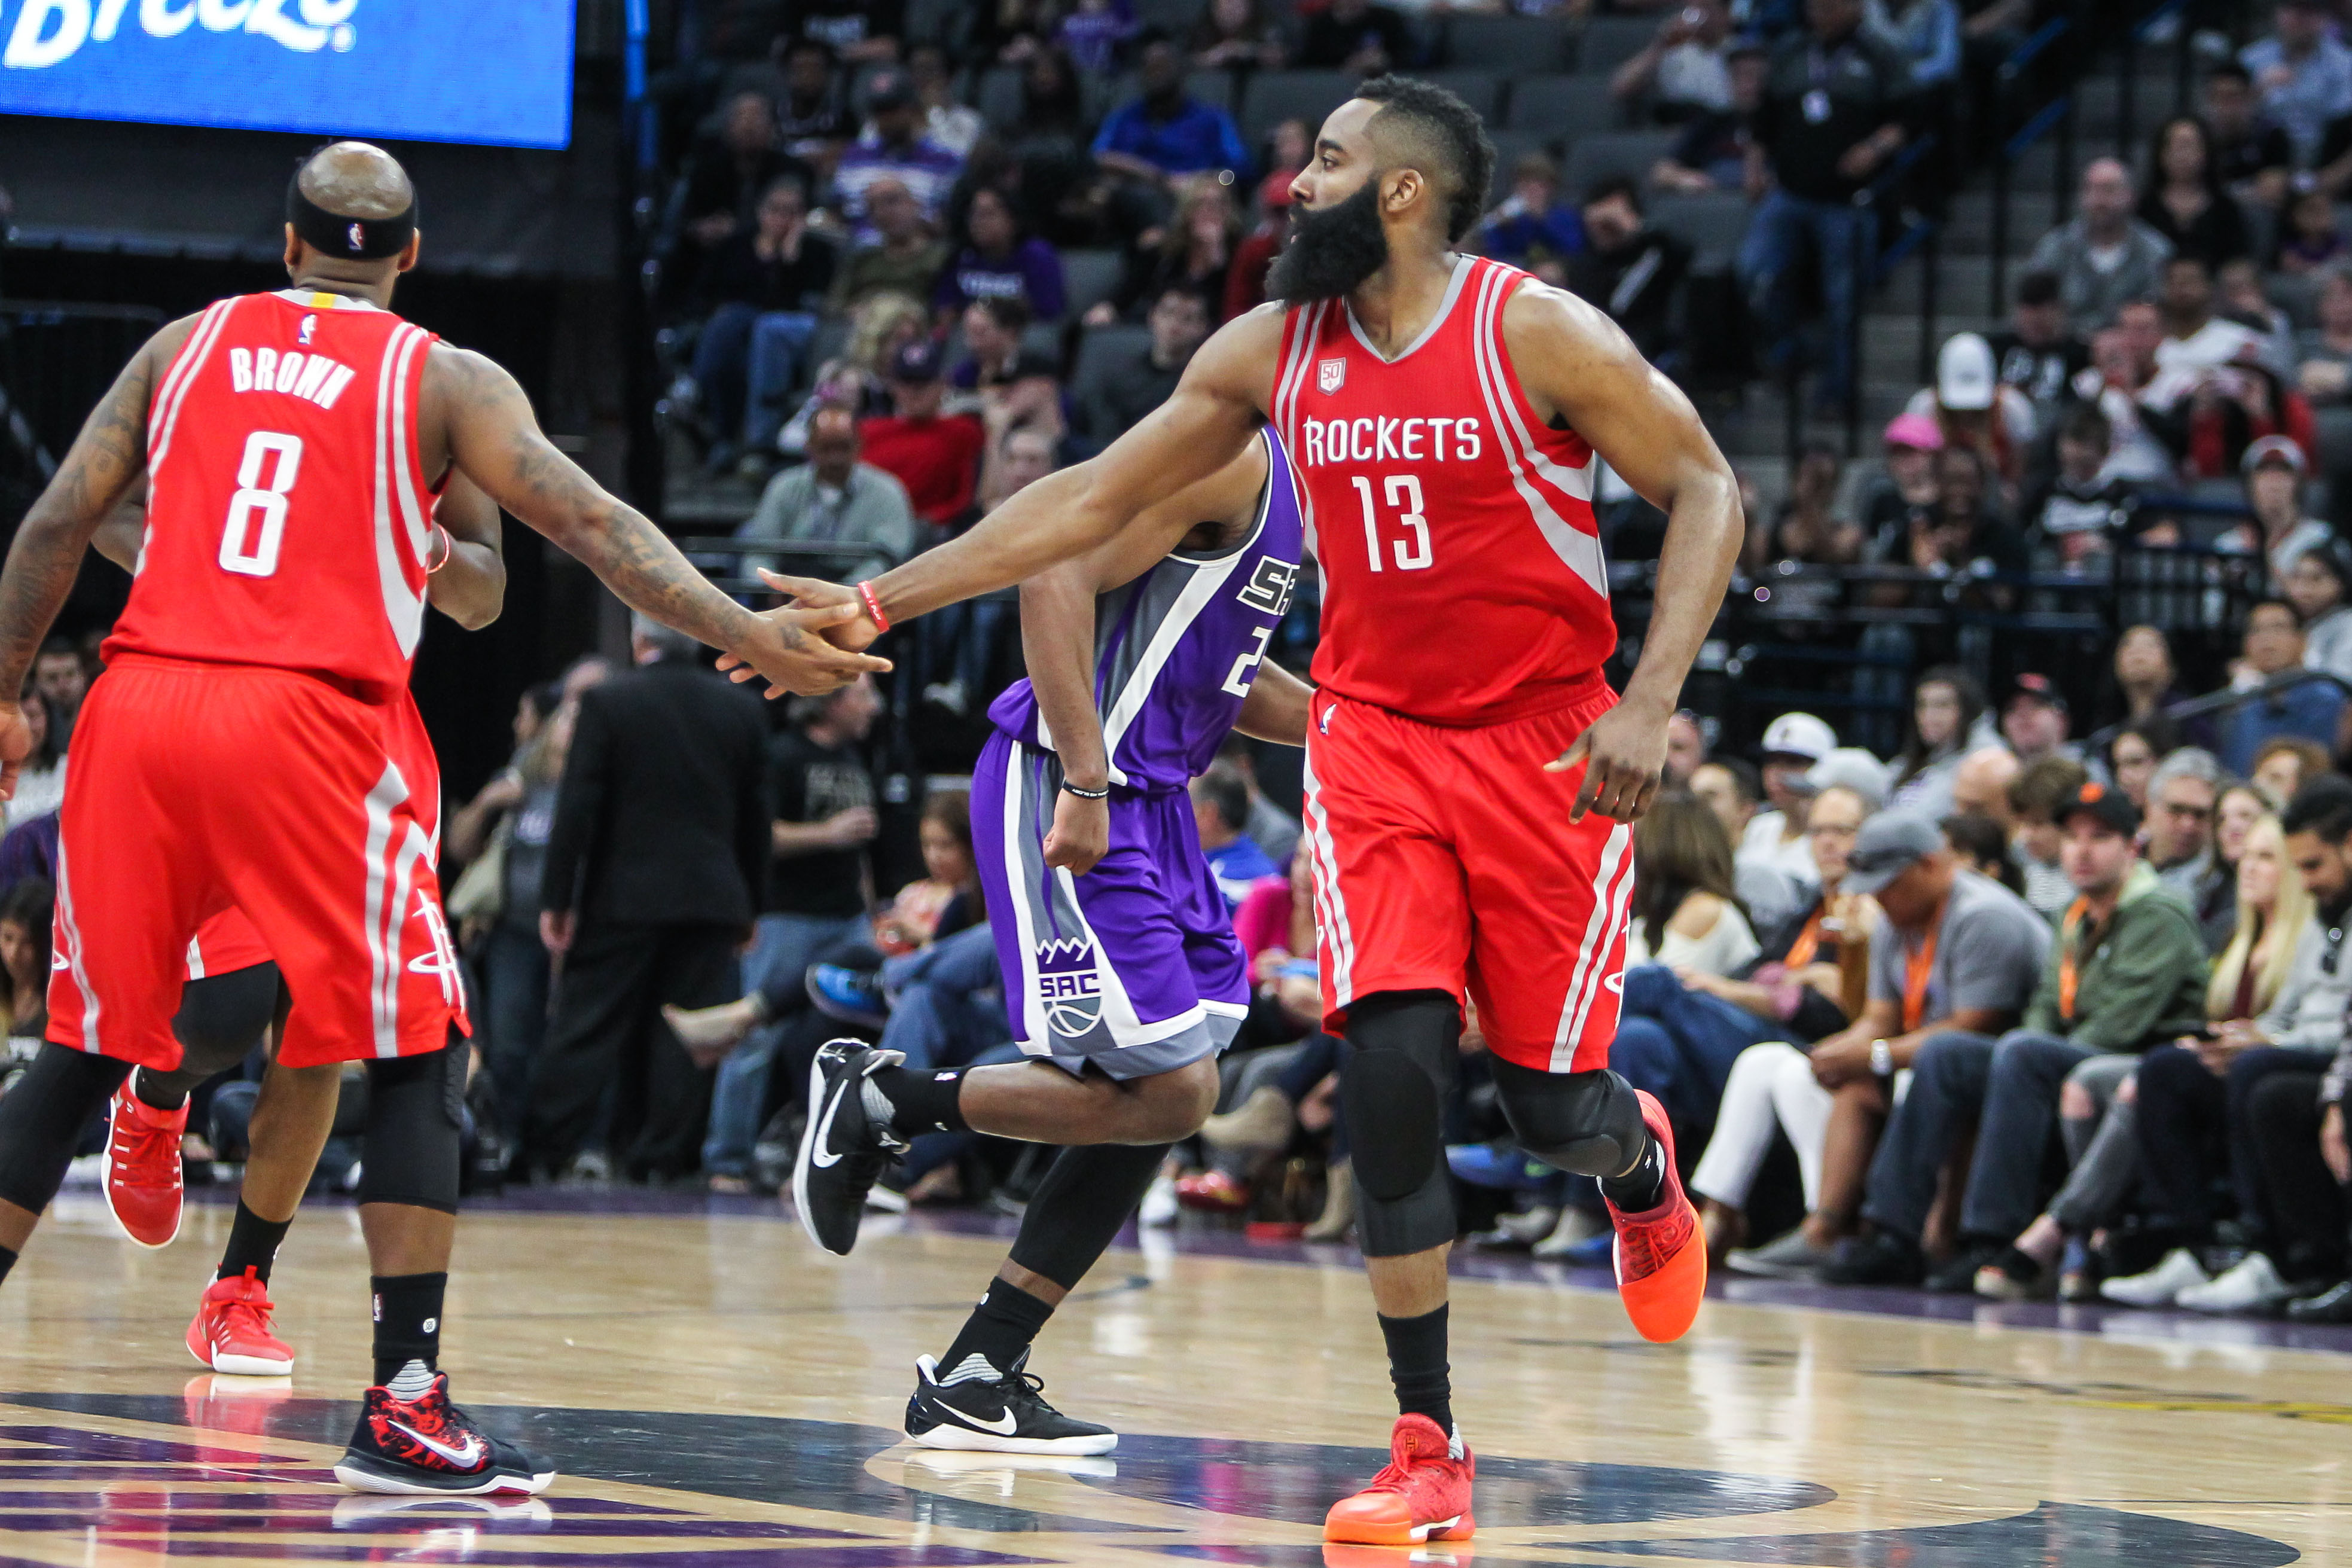 James Harden could break the NBA record for most points scored and created